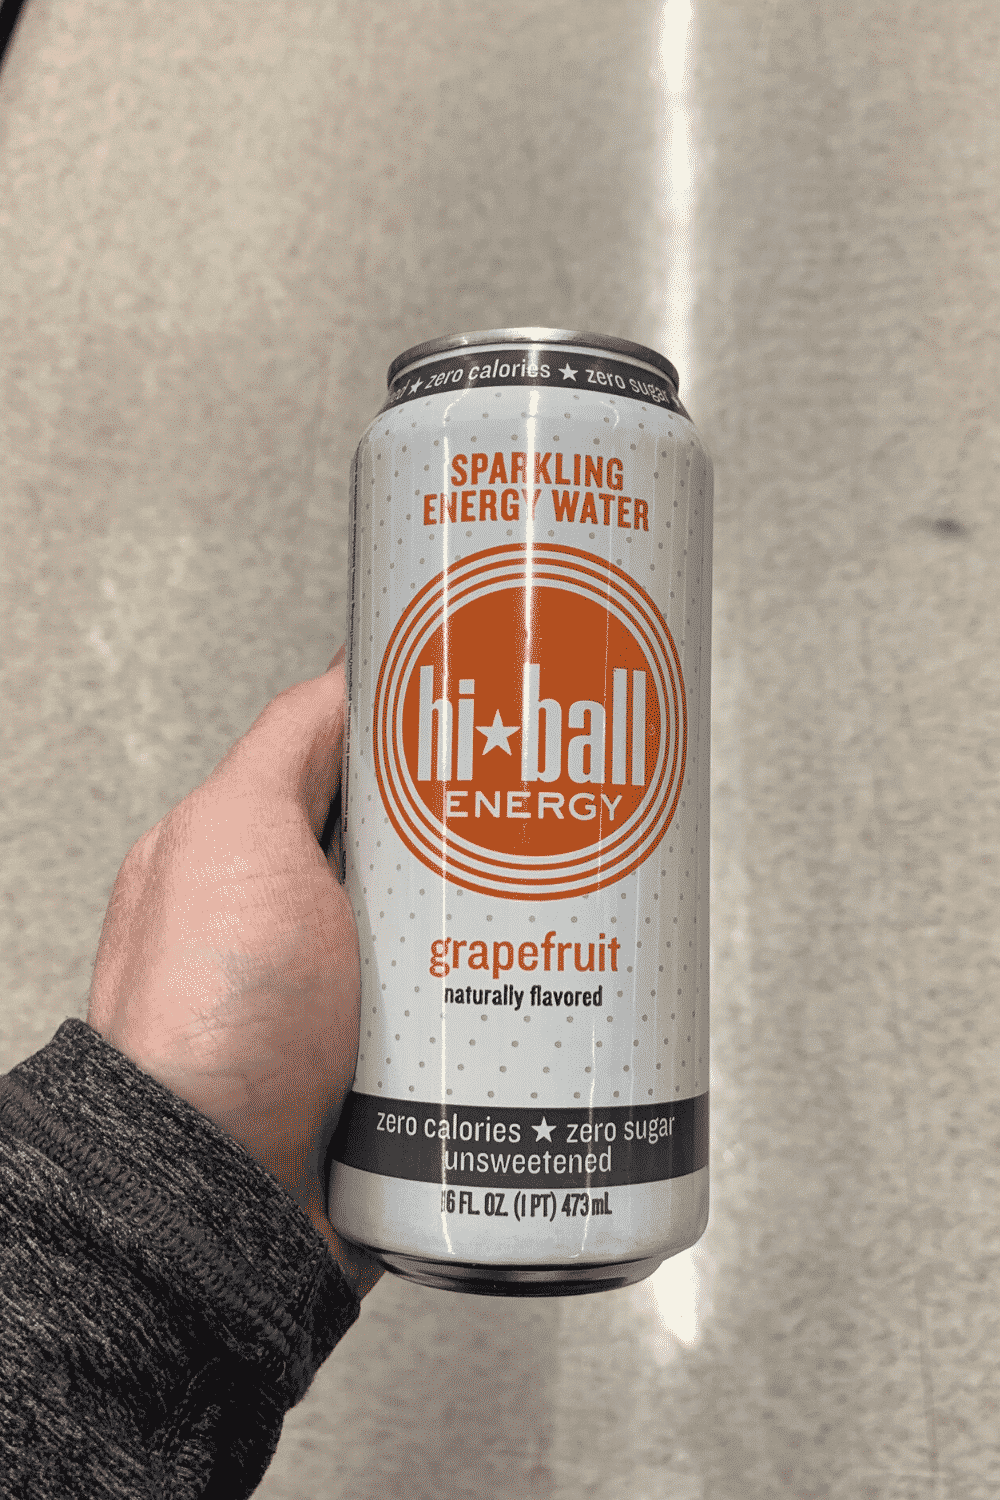 A hand holding a can of hi-ball energy drink grapefruit flavored